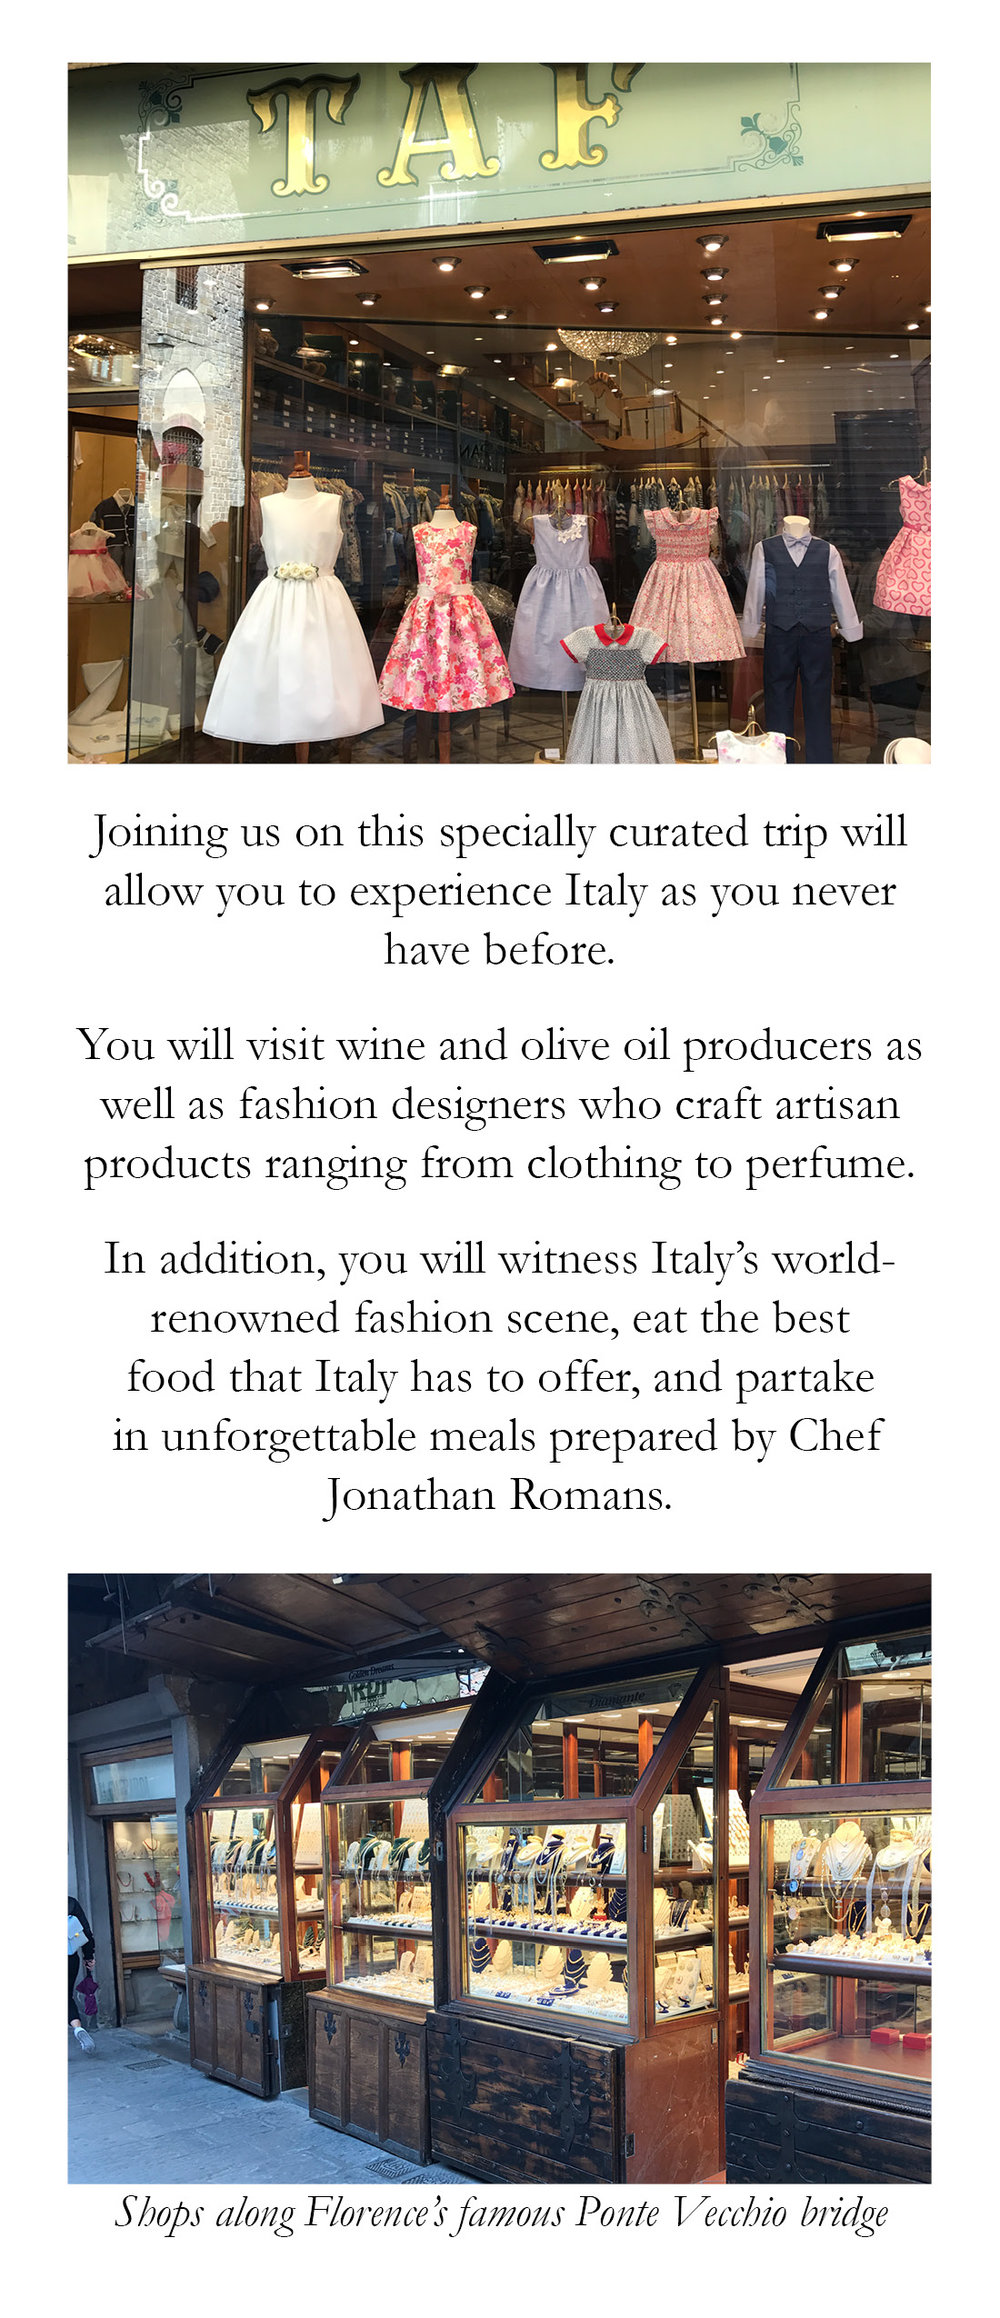 Italy 2018 Tour Brochure V092717 publish online4.jpg